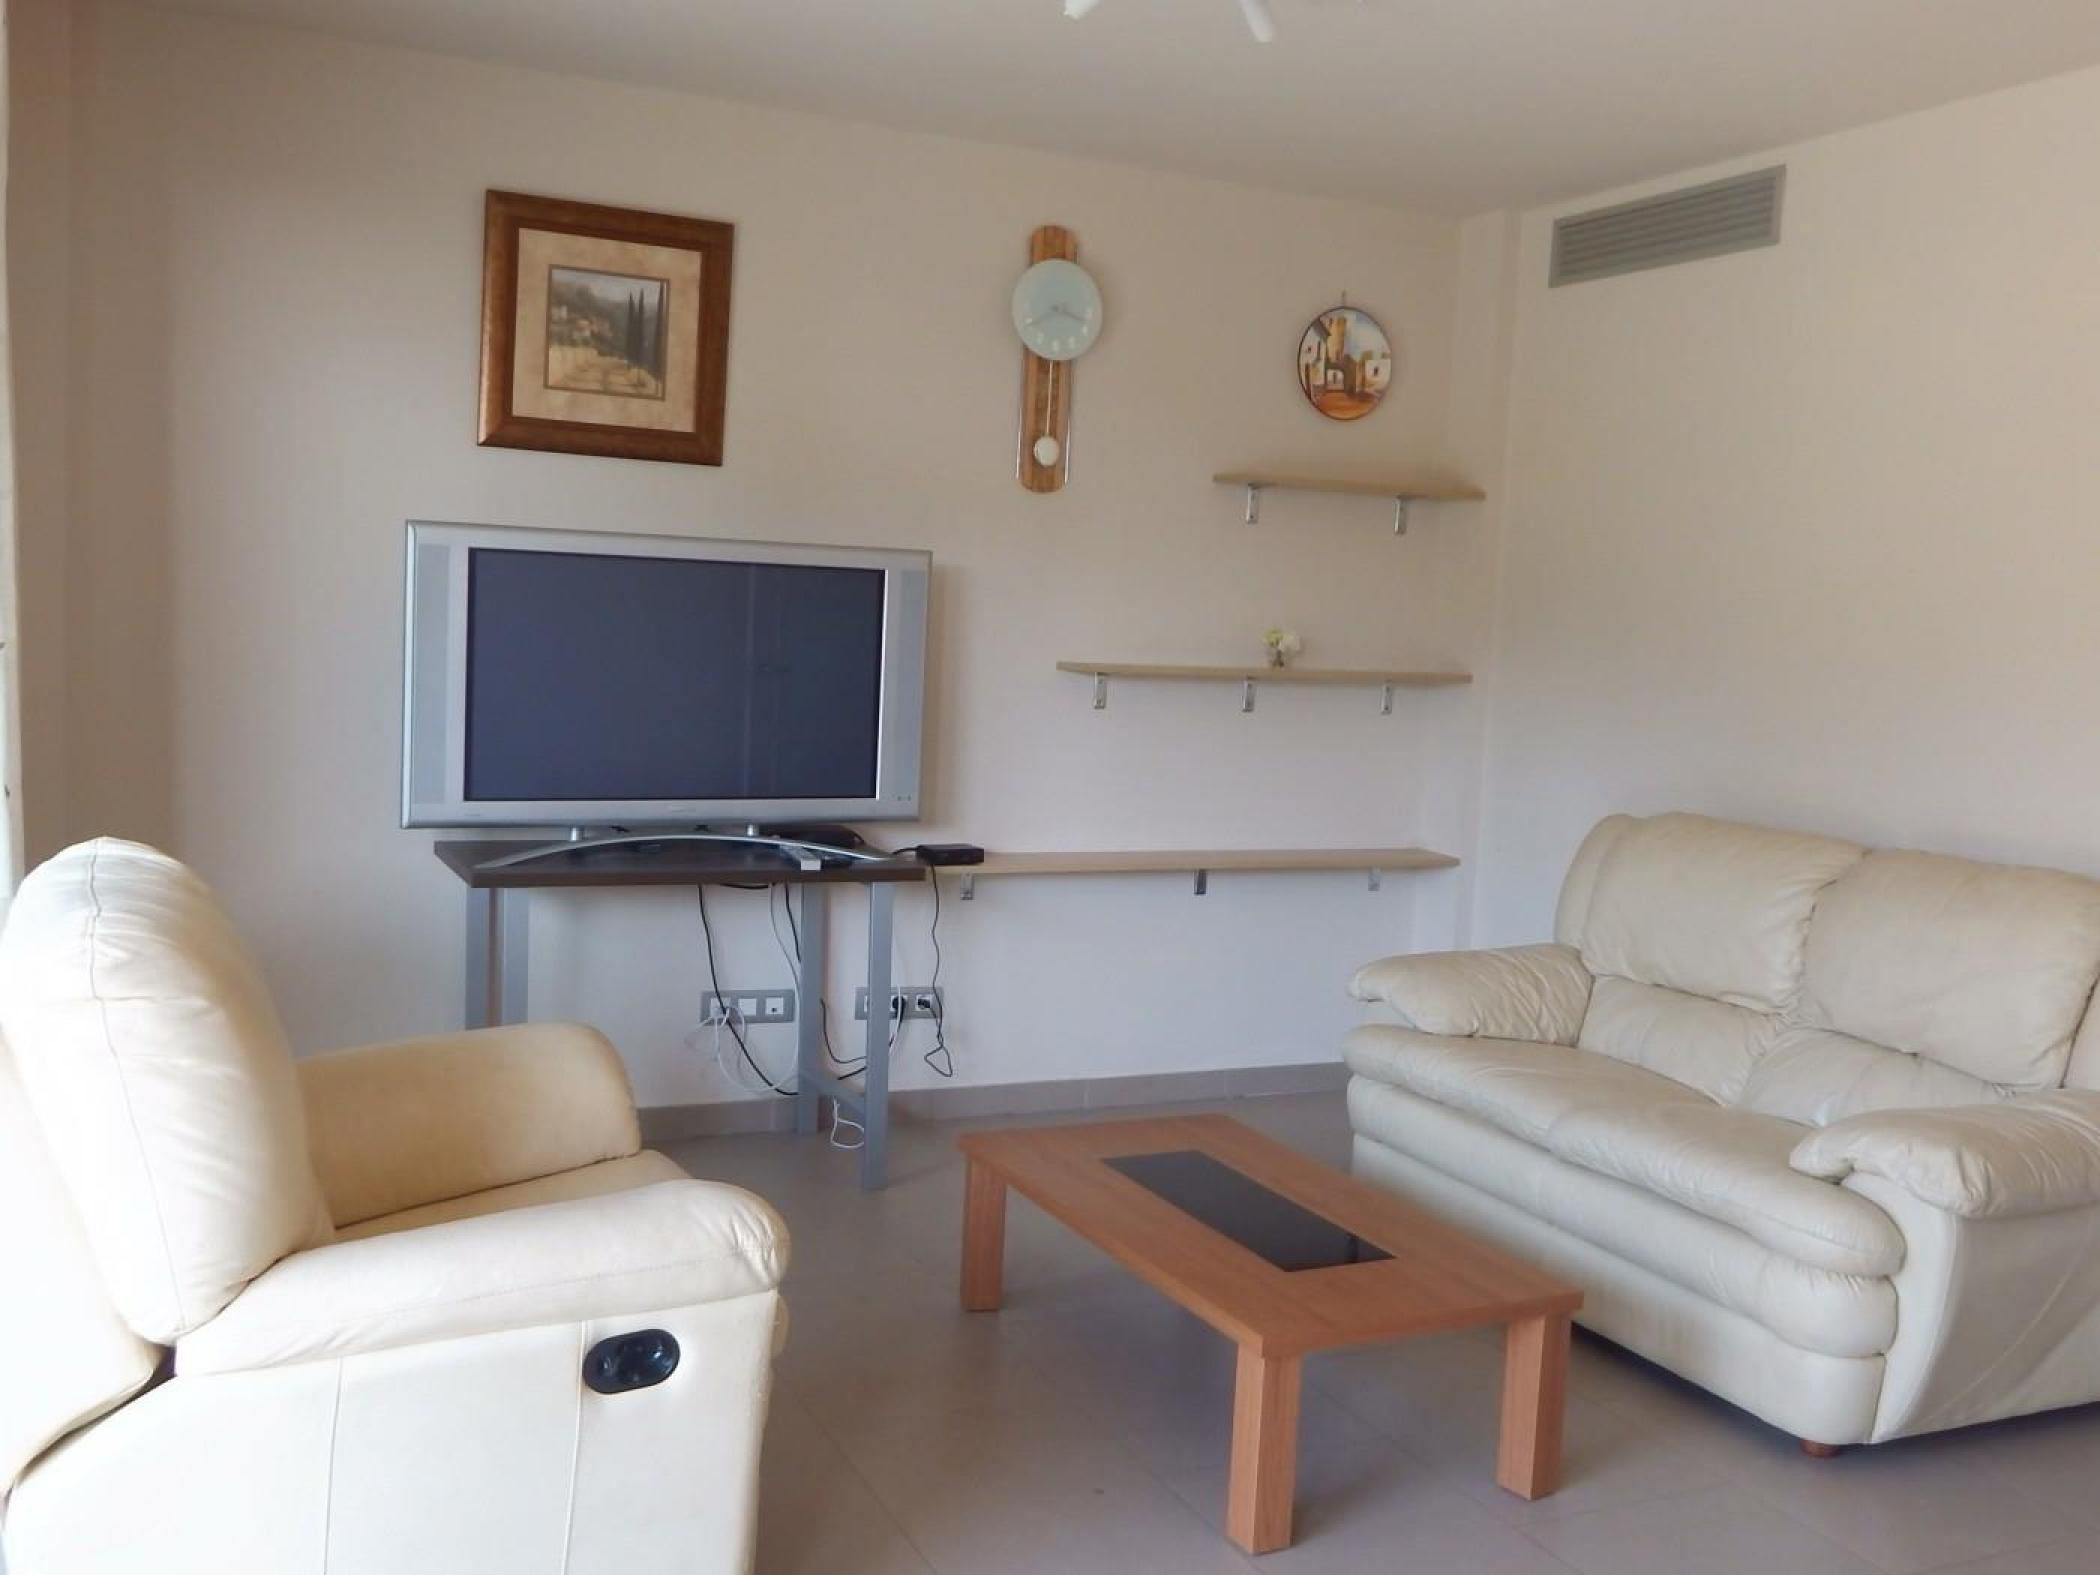 Rent Apartment in Platja d'Aro - Ground floor in front of the sea Ridaura BX4 - 13